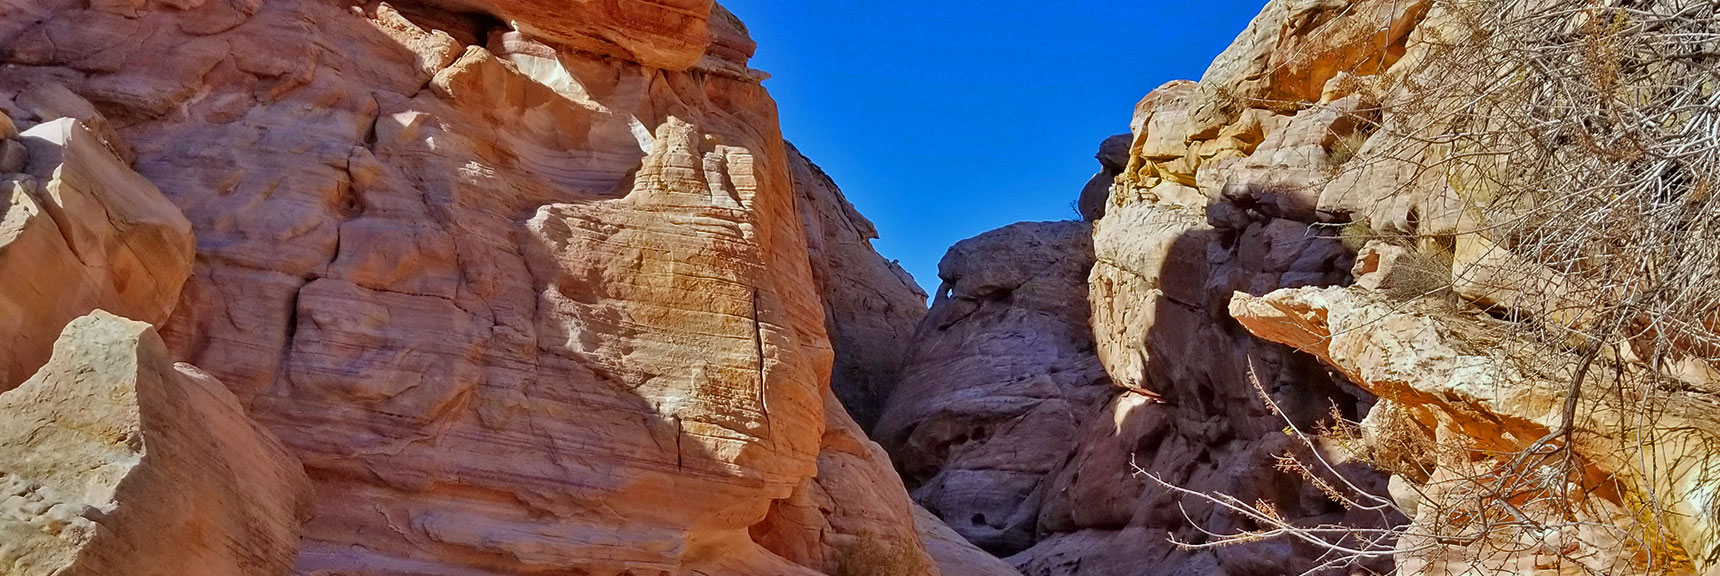 Entering the Slot Canyon on White Domes Loop Trail in Valley of Fire State Park, Nevada